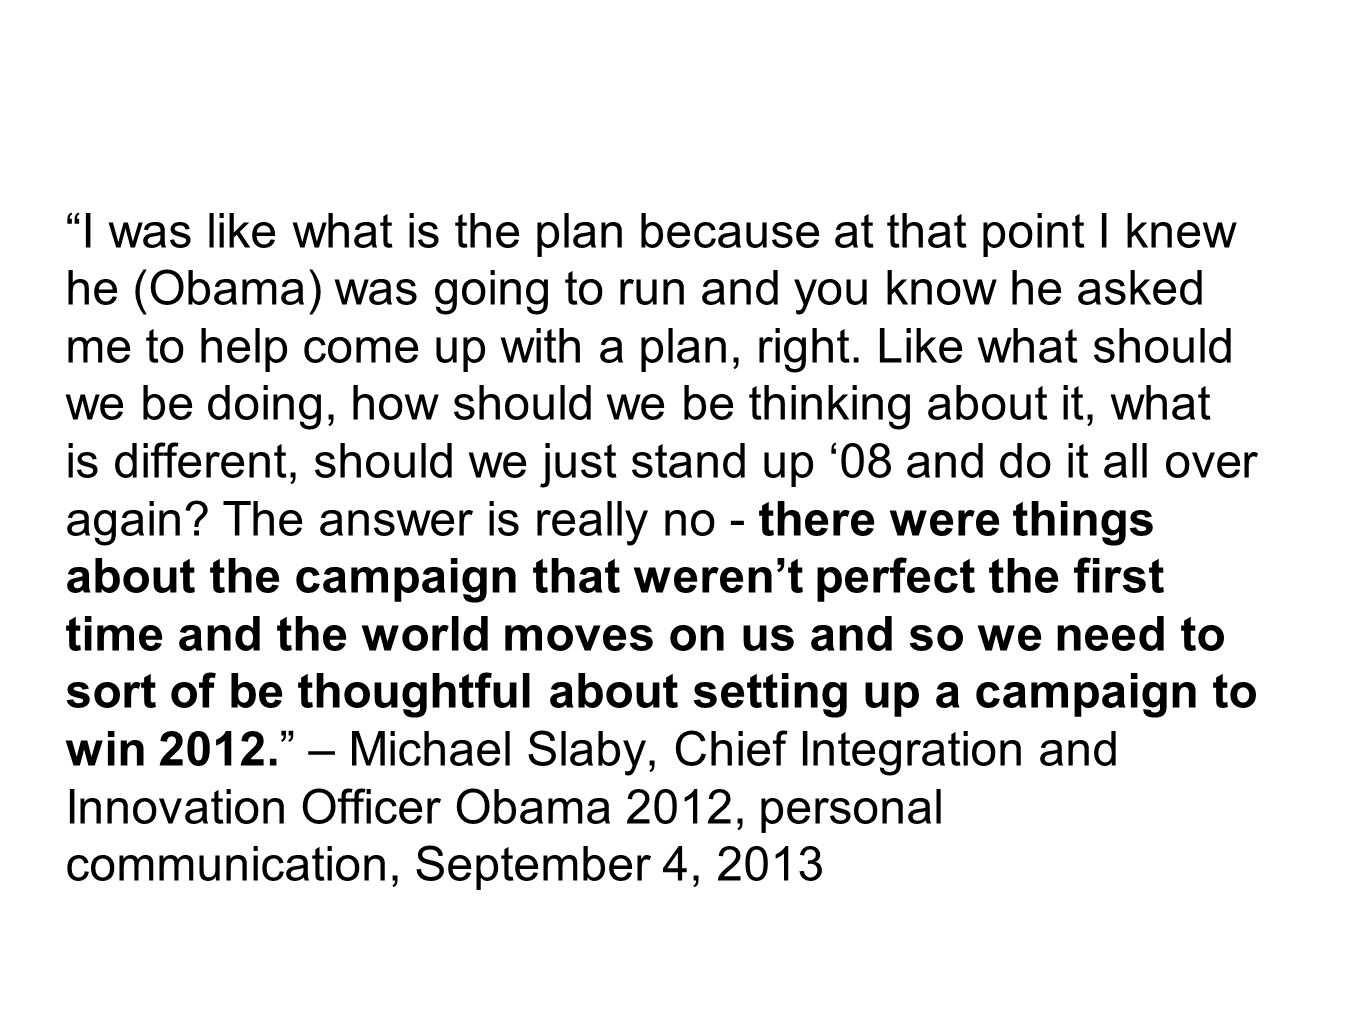 I was like what is the plan because at that point I knew he (Obama) was going to run and you know he asked me to help come up with a plan, right.